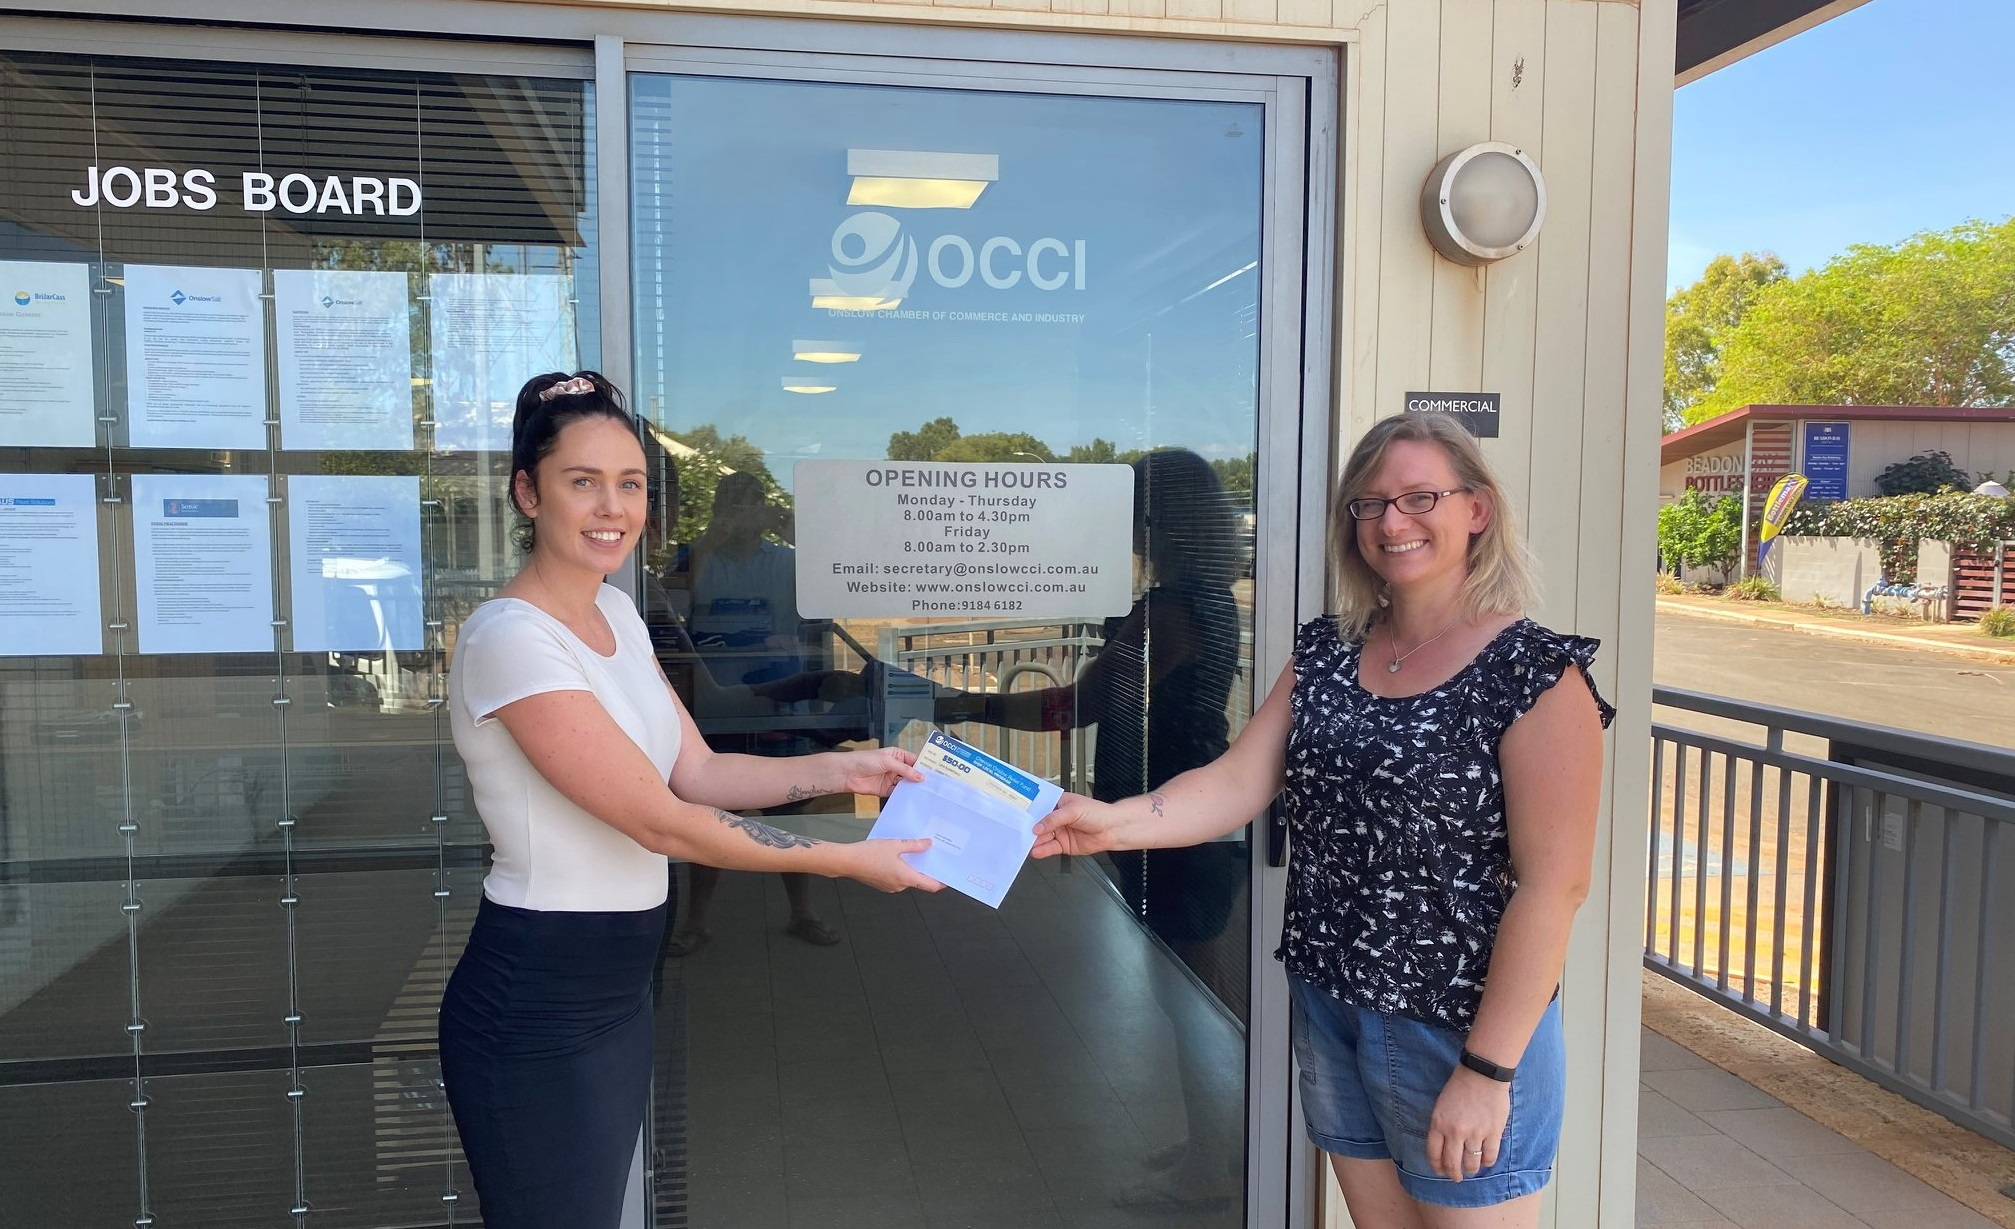 Shelley Alaniz from the Onslow Chamber of Commerce and Industry presents resident Lena Kustermann with a Shop Local voucher as part of the relief fund